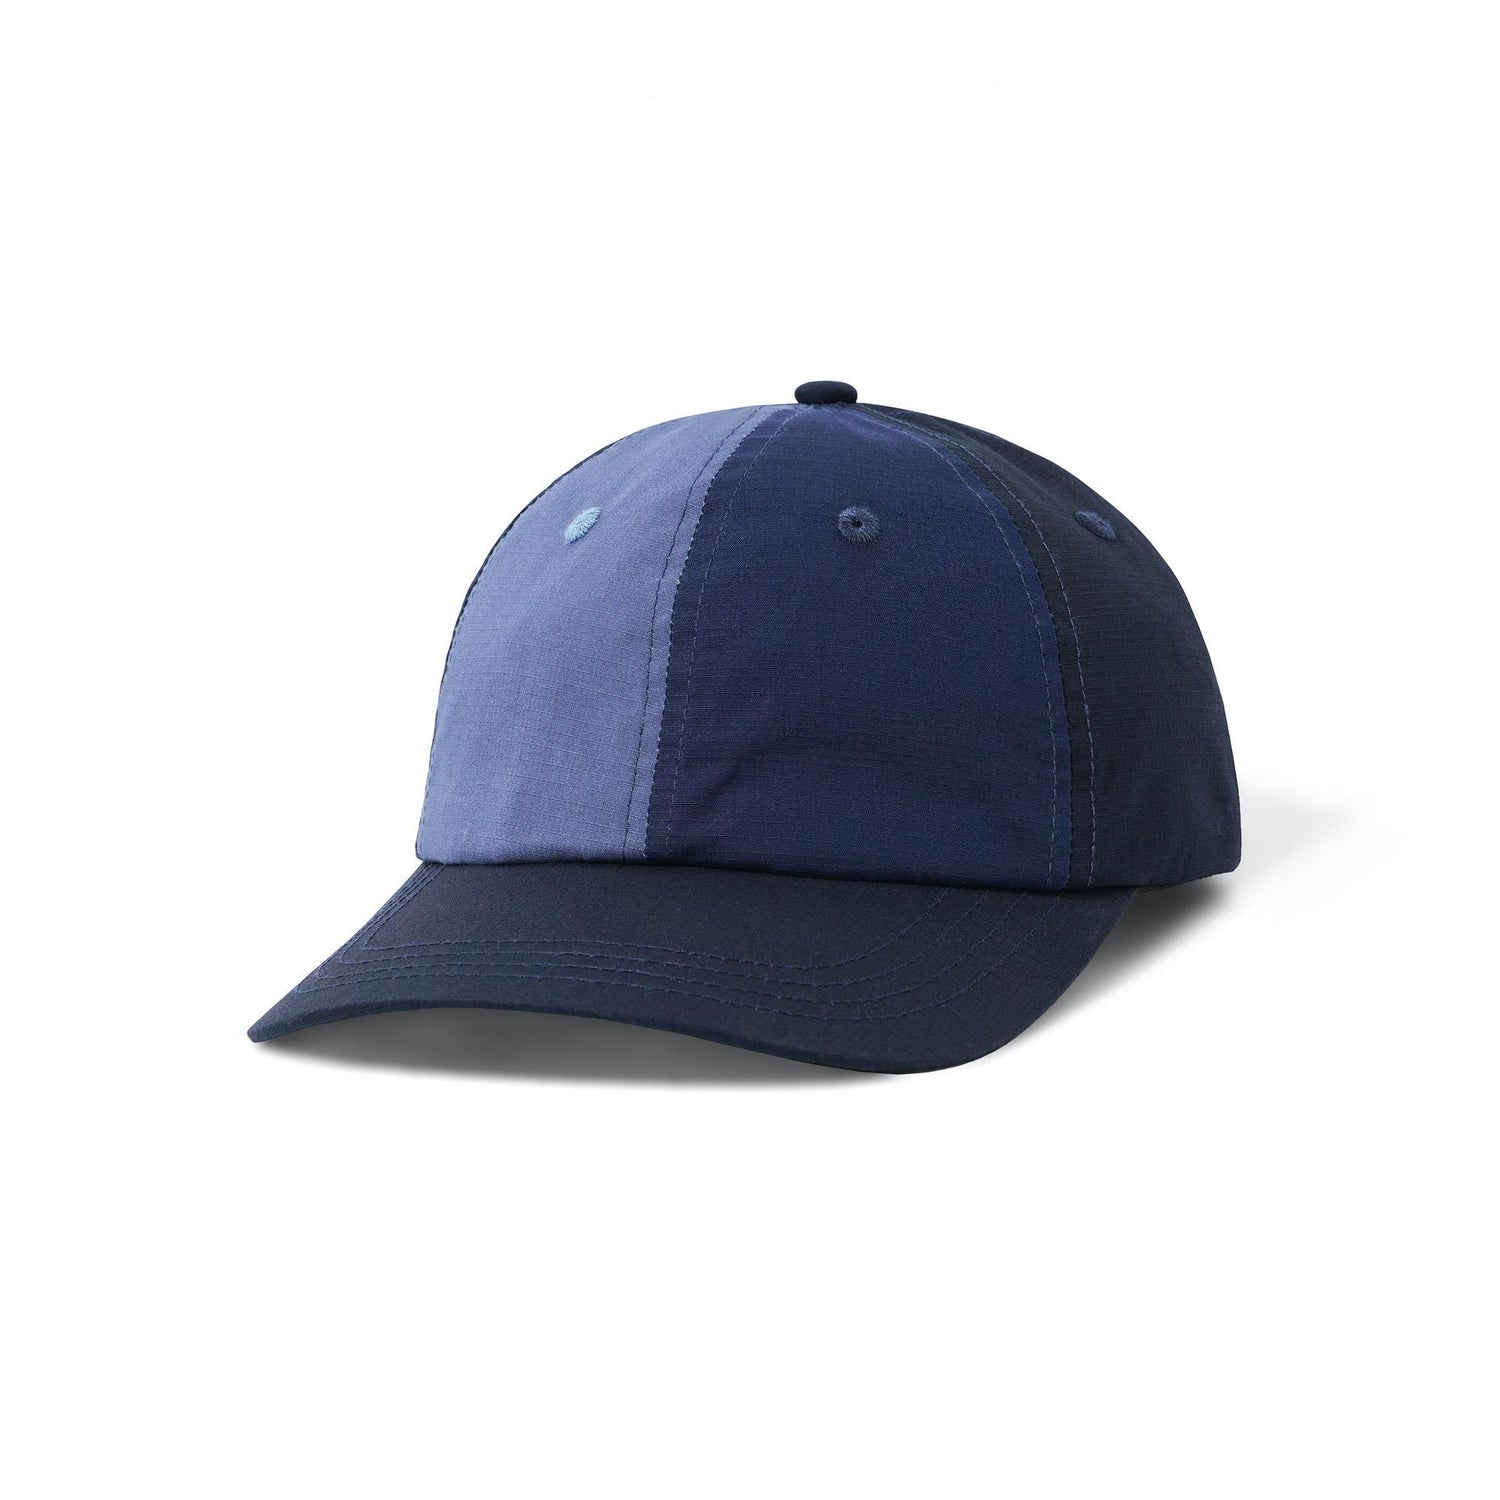 Patchwork 6 Panel, Navy